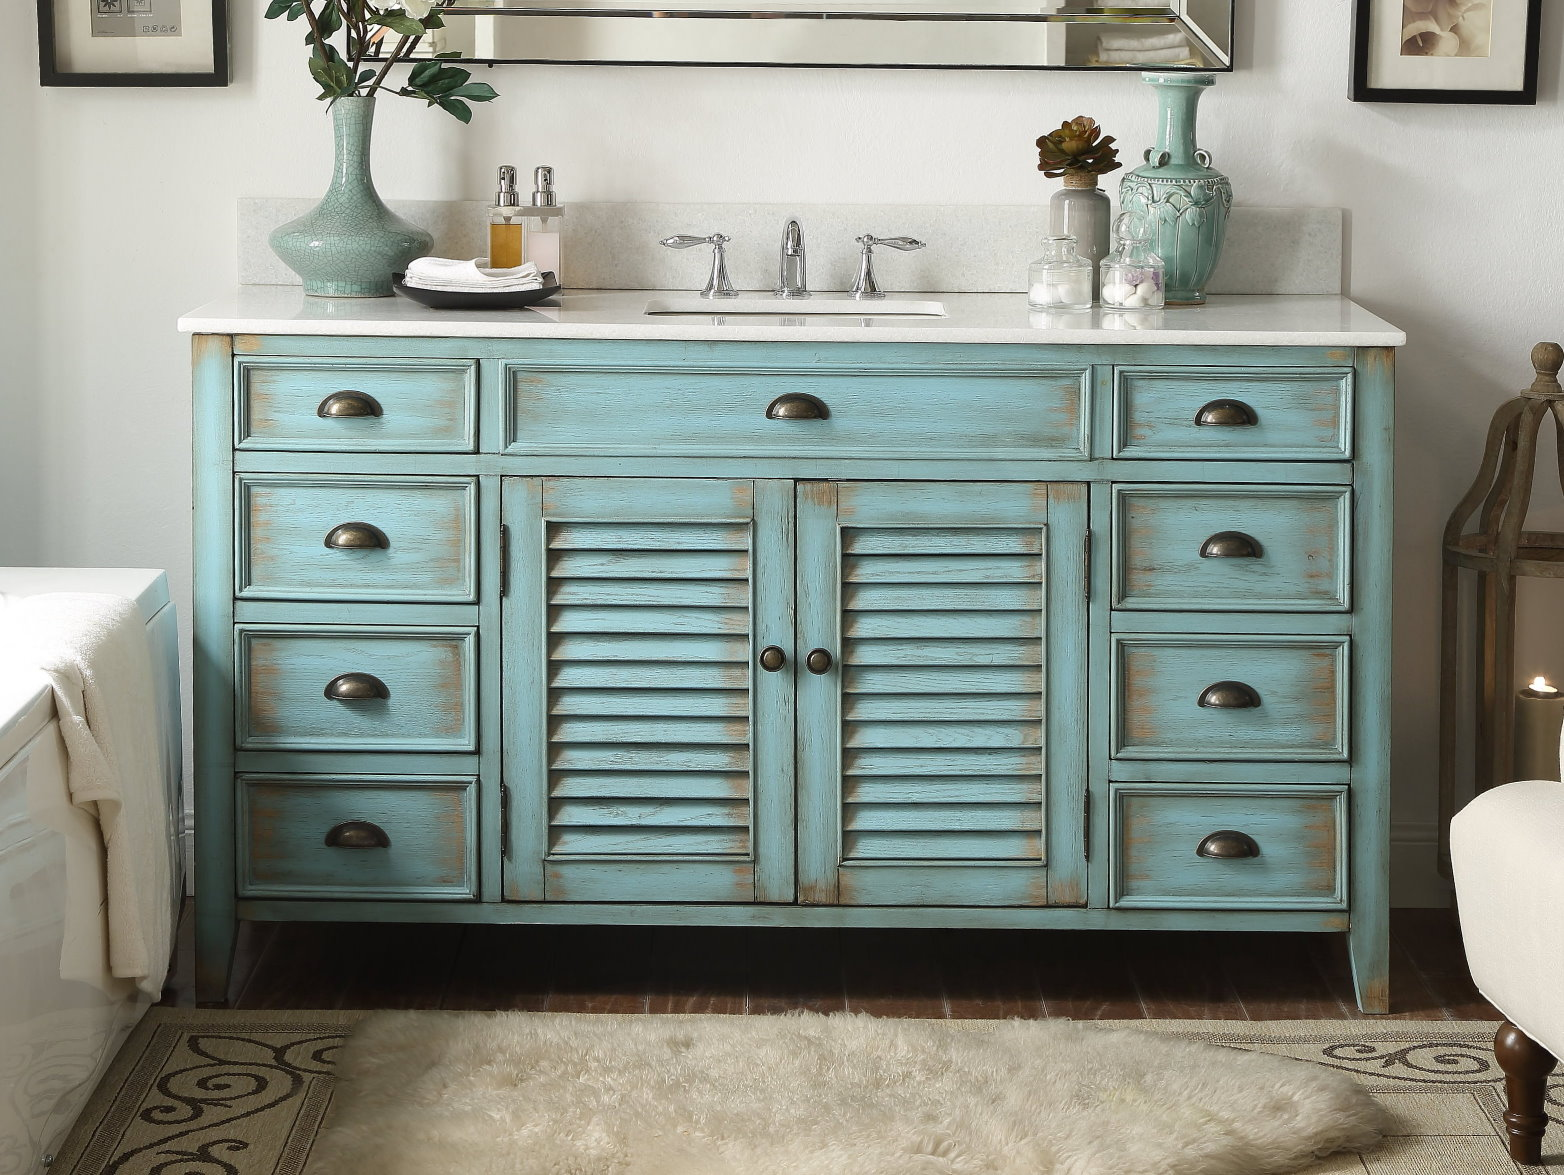 Bathroom Vanities Buy Bathroom Vanity Cabinets And Bathroom Furniture Online